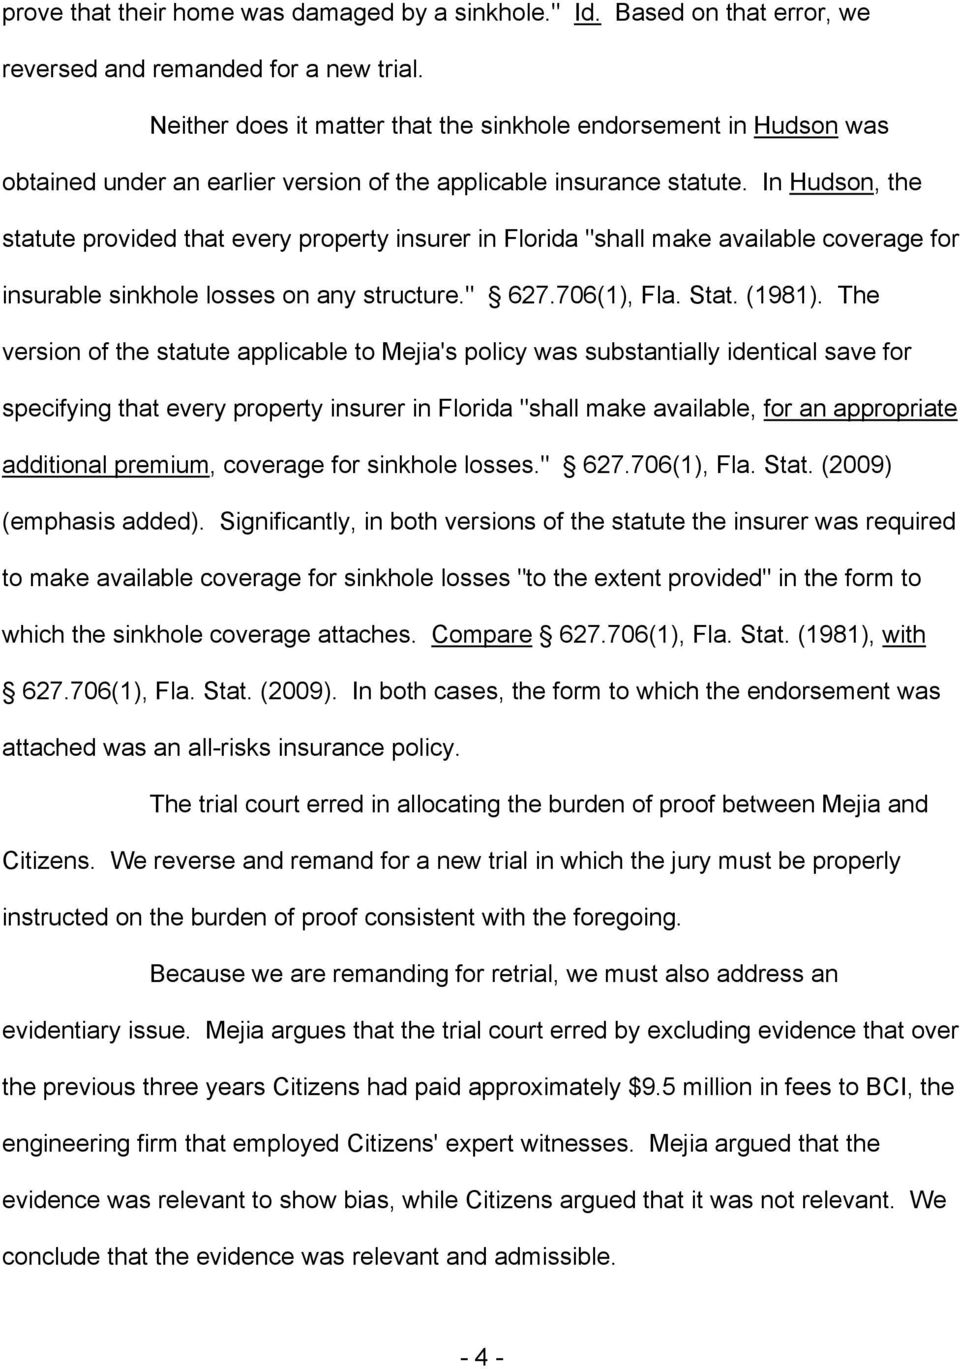 "In Hudson, the statute provided that every property insurer in Florida ""shall make available coverage for insurable sinkhole losses on any structure."" 627.706(1), Fla. Stat. (1981)."